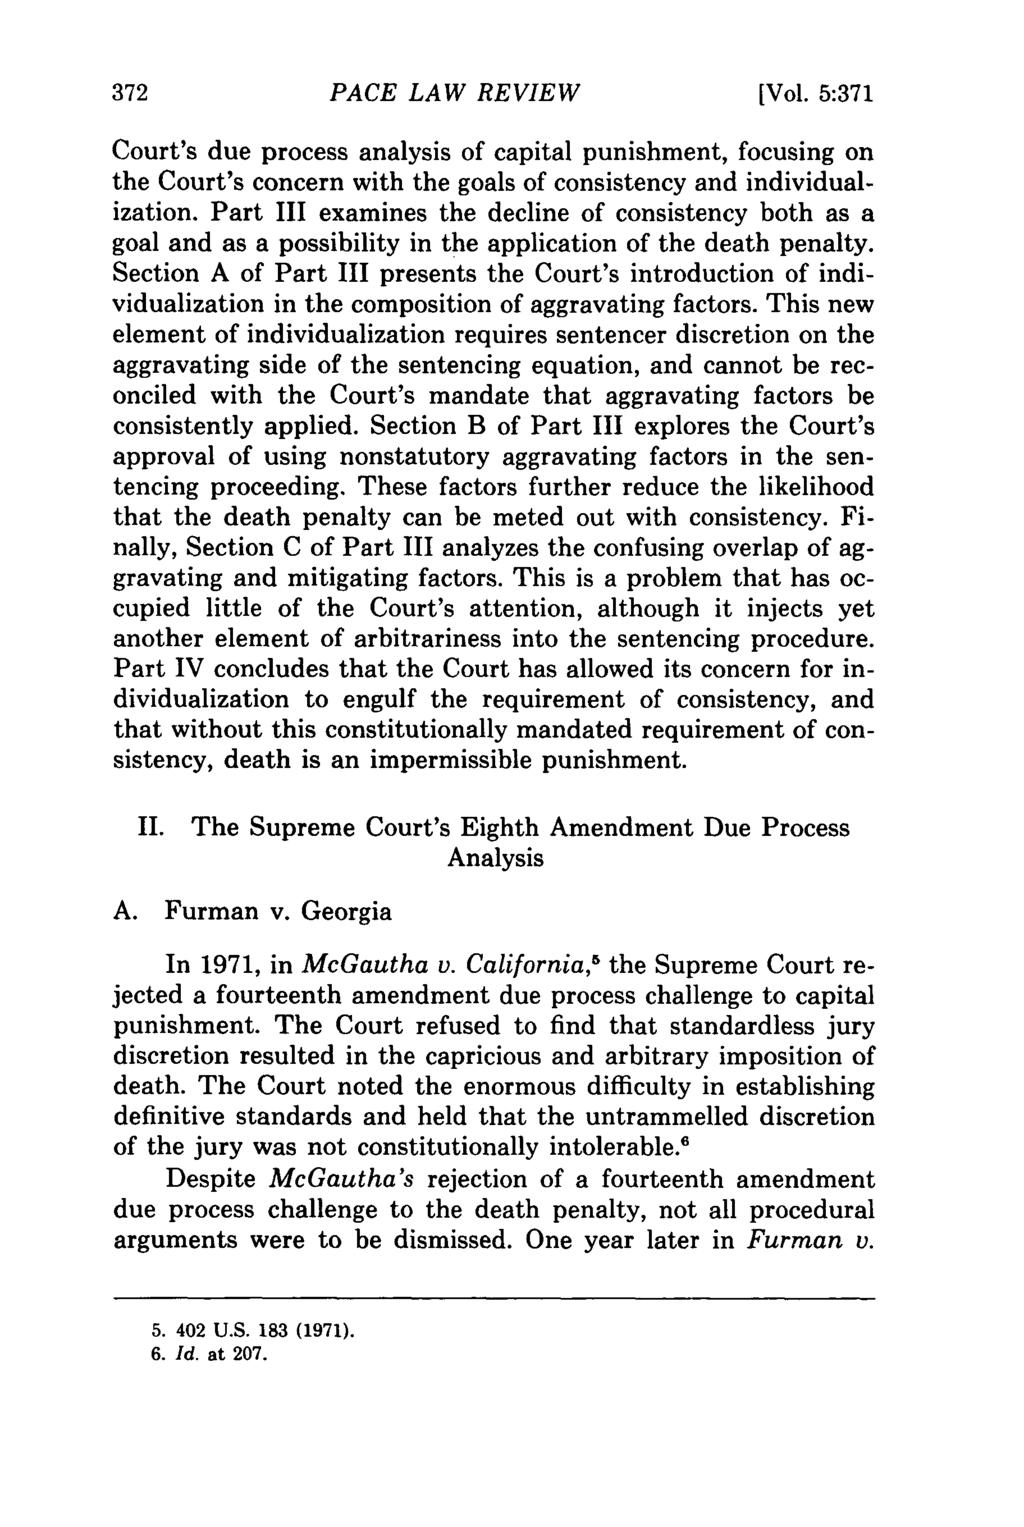 PACE LAW REVIEW [Vol. 5:371 Court's due process analysis of capital punishment, focusing on the Court's concern with the goals of consistency and individualization.